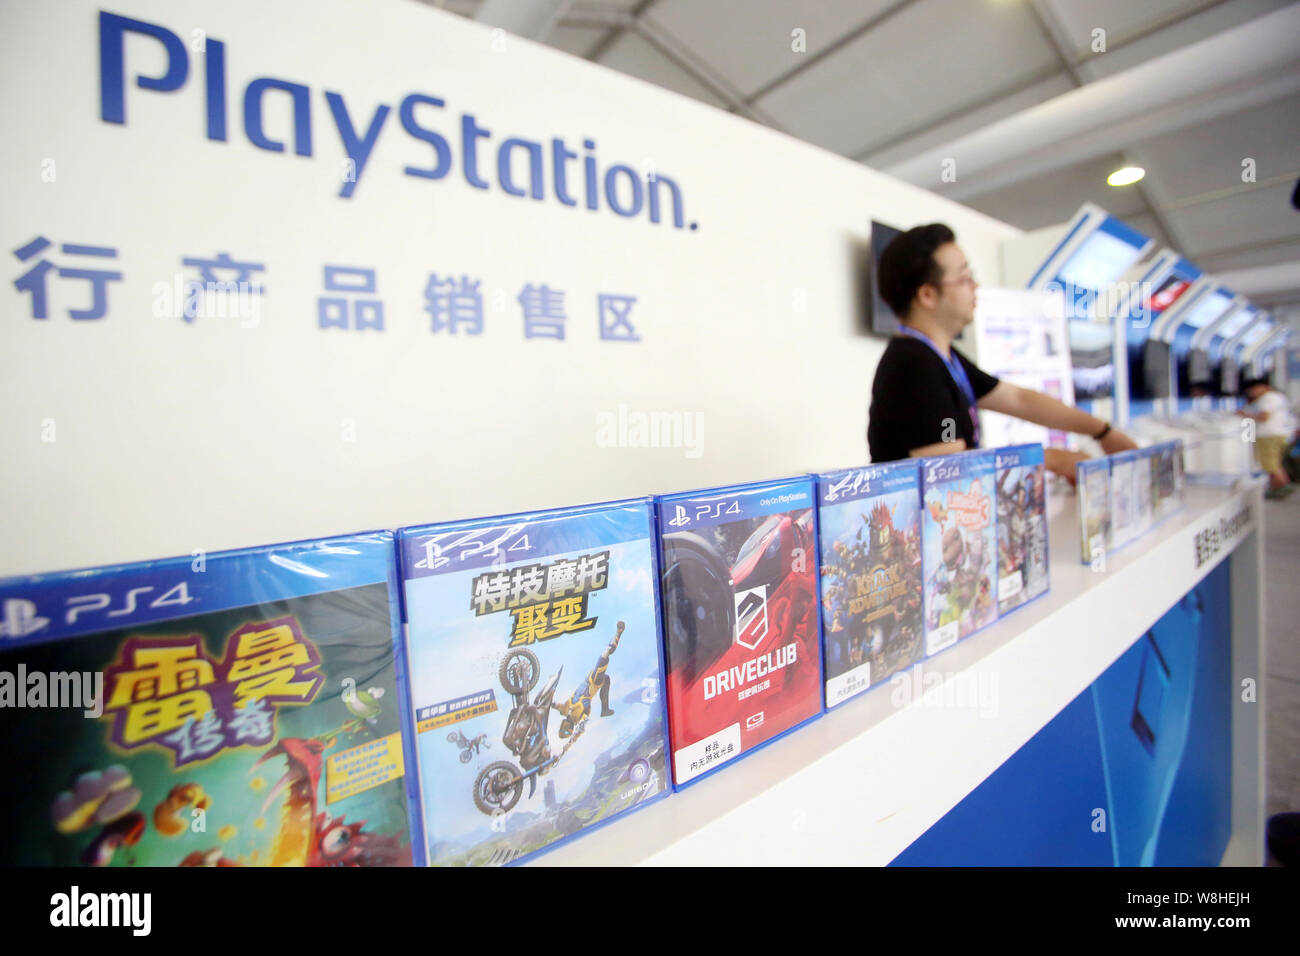 FILE--Copies of electronic games of Sony's PlayStation 4